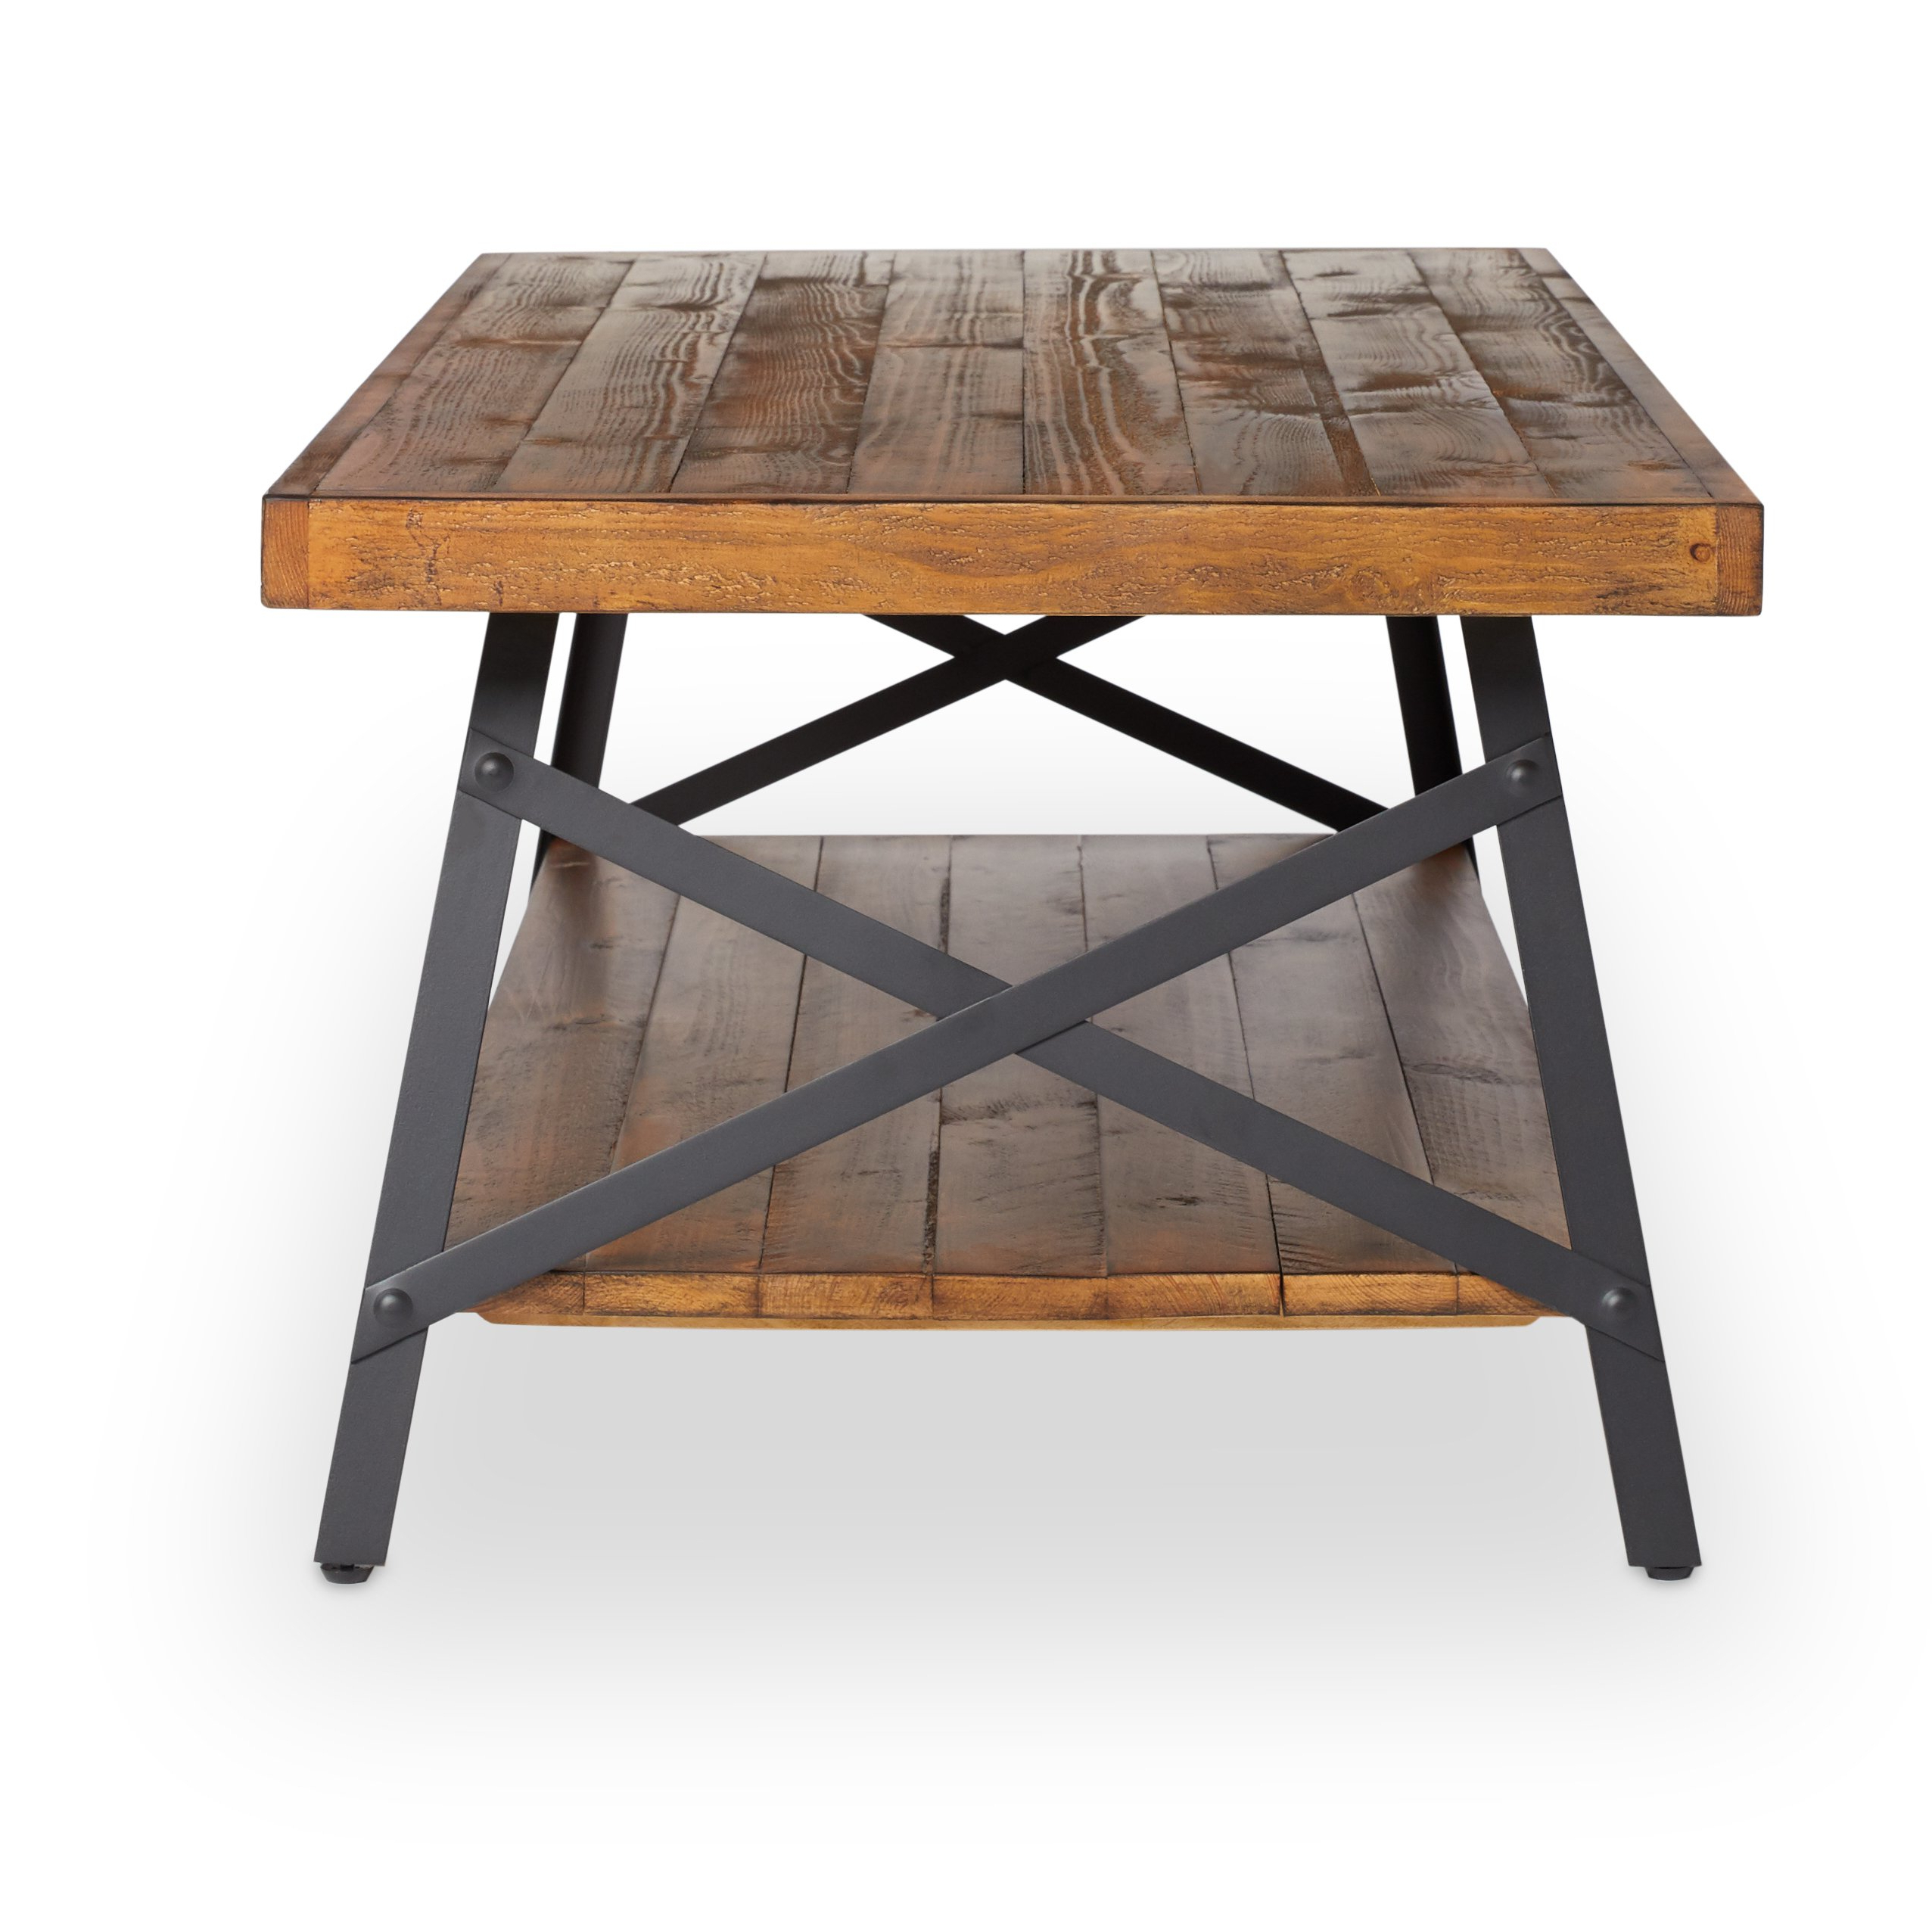 Modern Rustic Coffee Tables Throughout Latest Shop Pine Canopy Kaibab Modern Rustic Wood Coffee Table – Free (View 10 of 20)